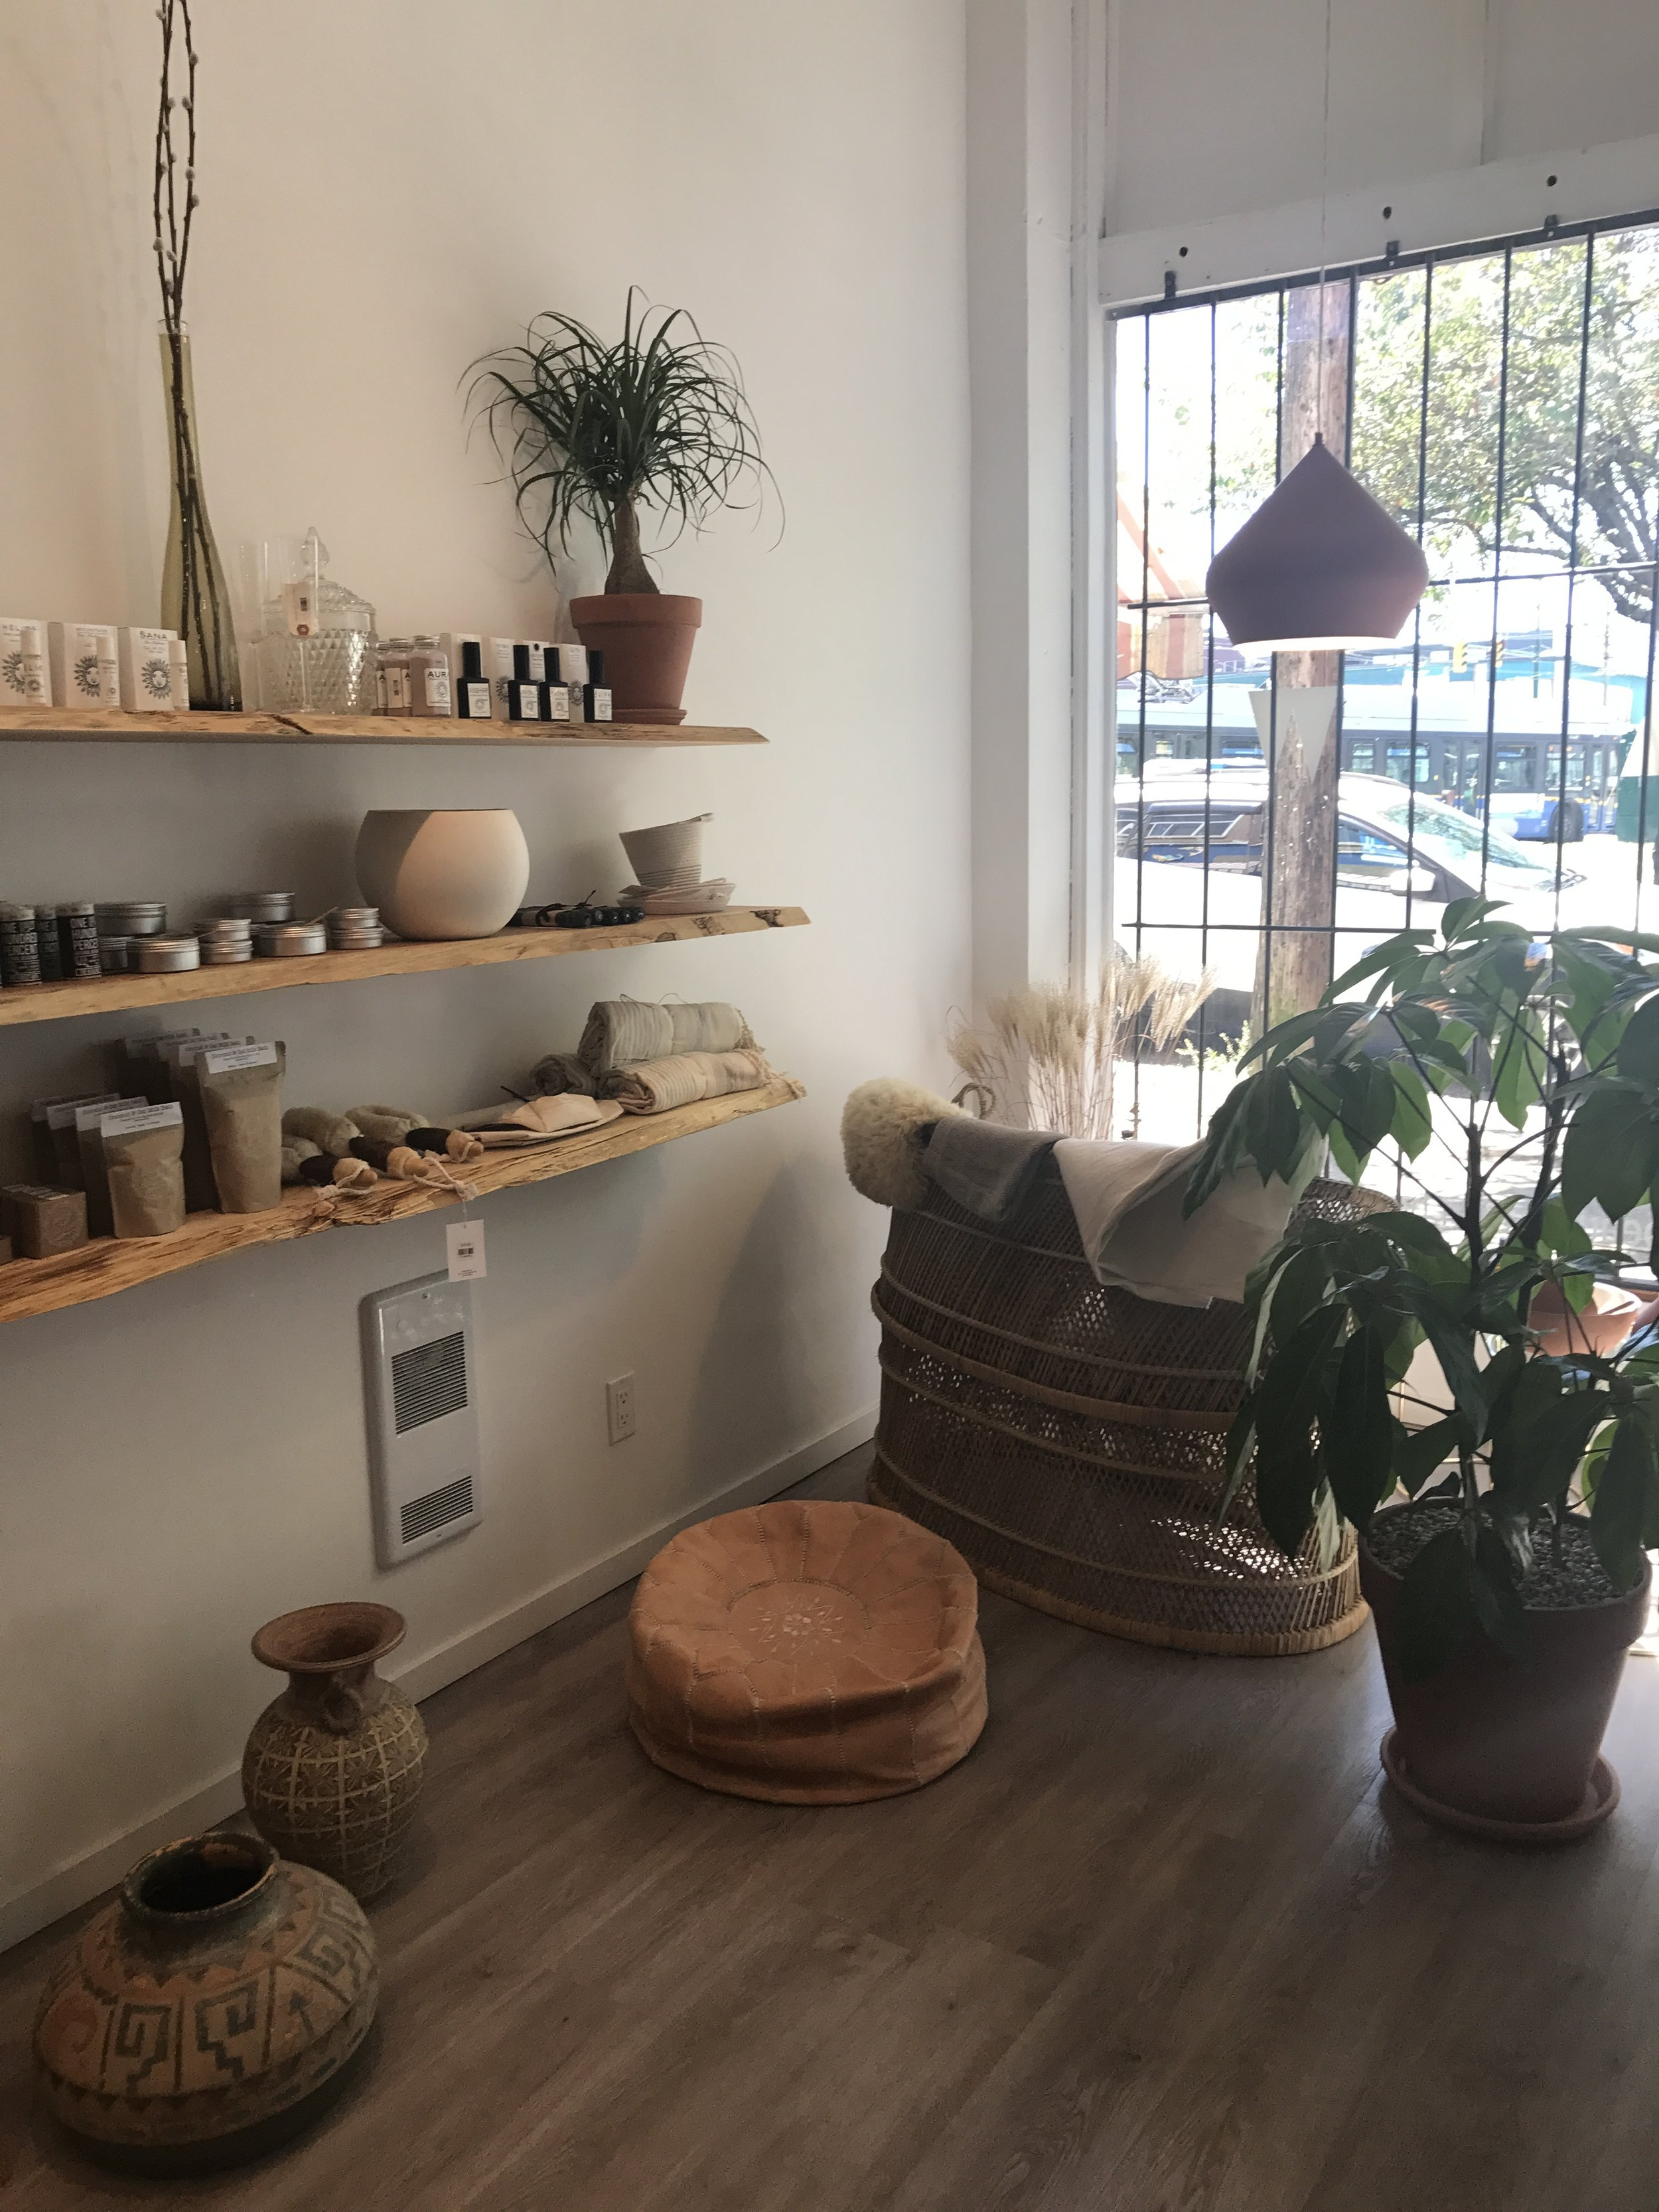 Harlow Atelier - Thoughtfully + aesthetically designed, natural + organic self care goods